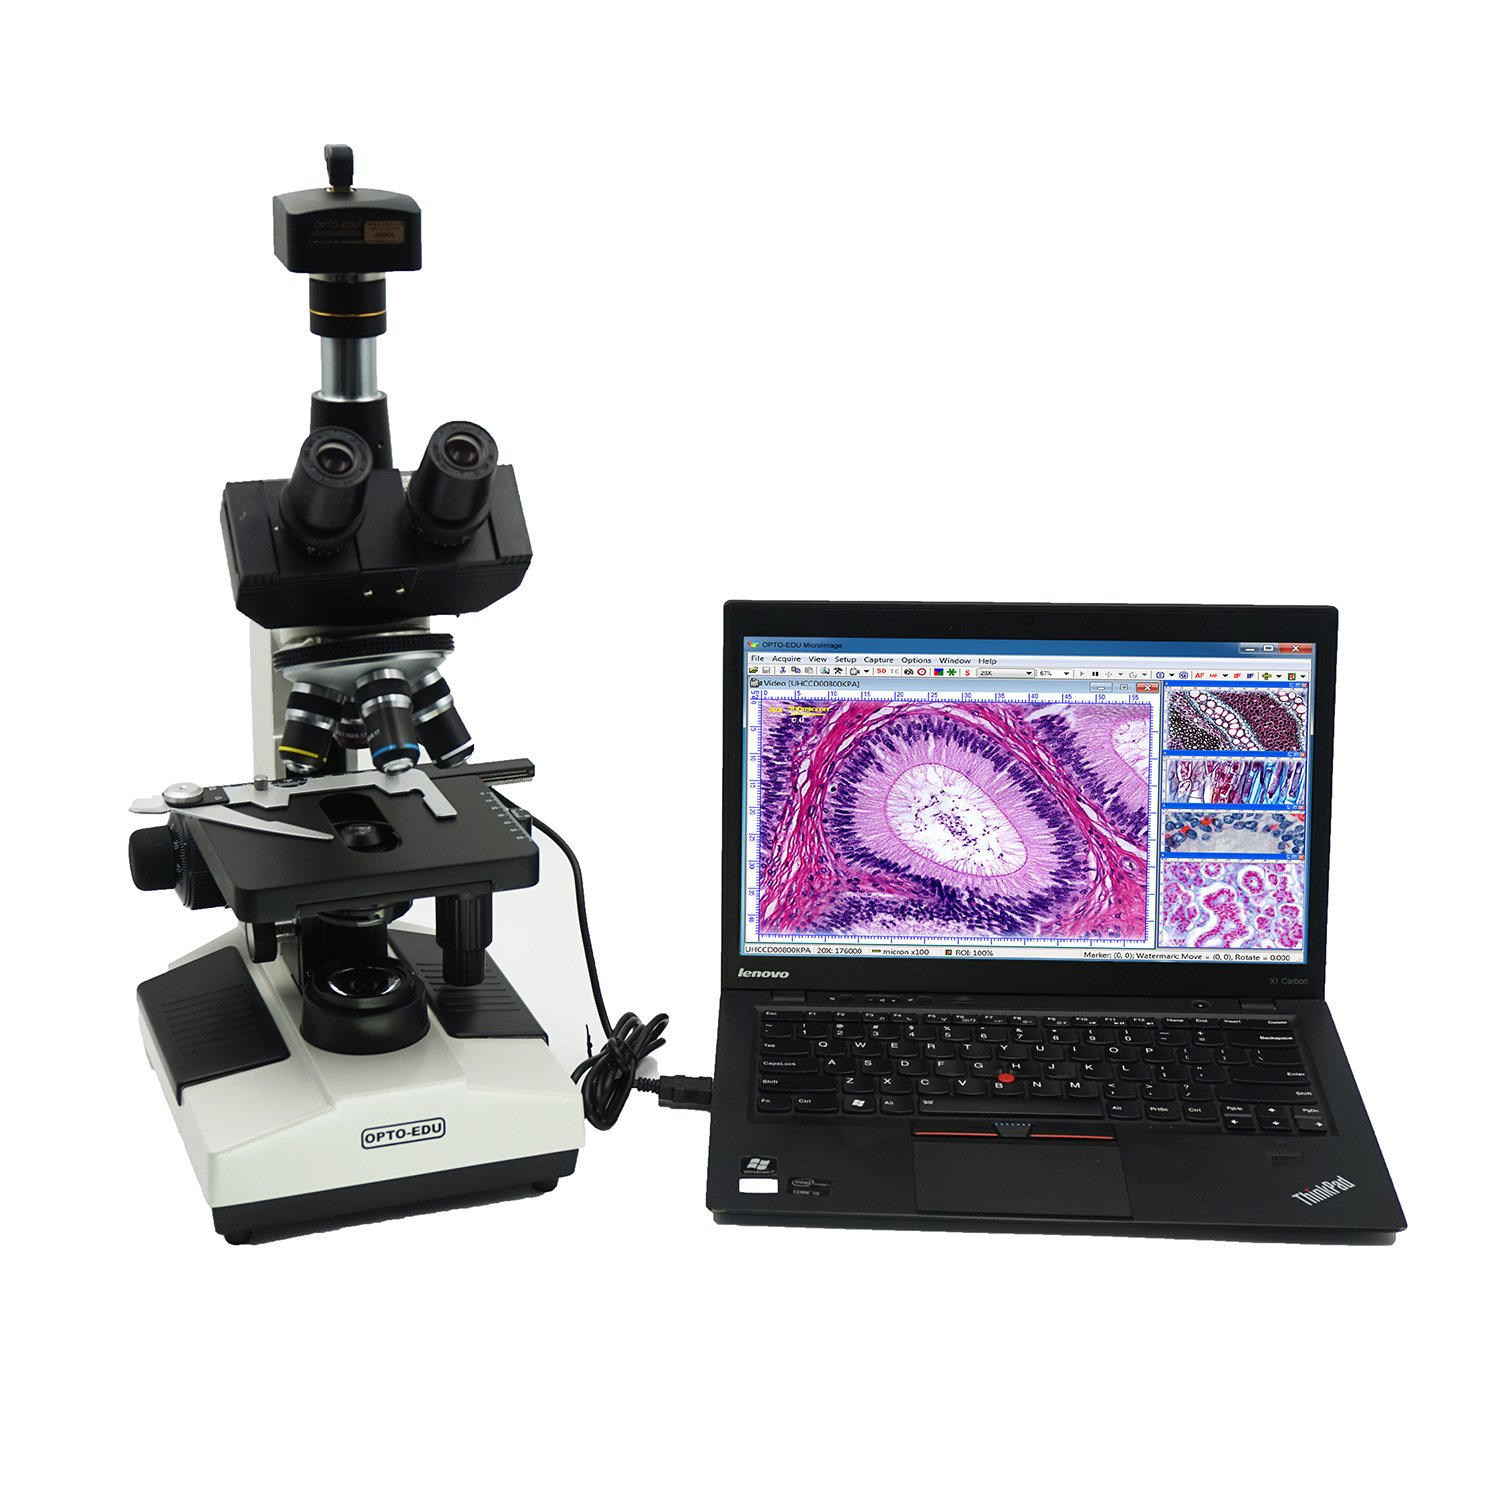 OPTO-EDU A11.1008-5M  Full Size Lab Digital Trinocular Compound LED Microscope with 10MP USB Camera and 3D Mechanical Stage, Metal, Glass, Plastic